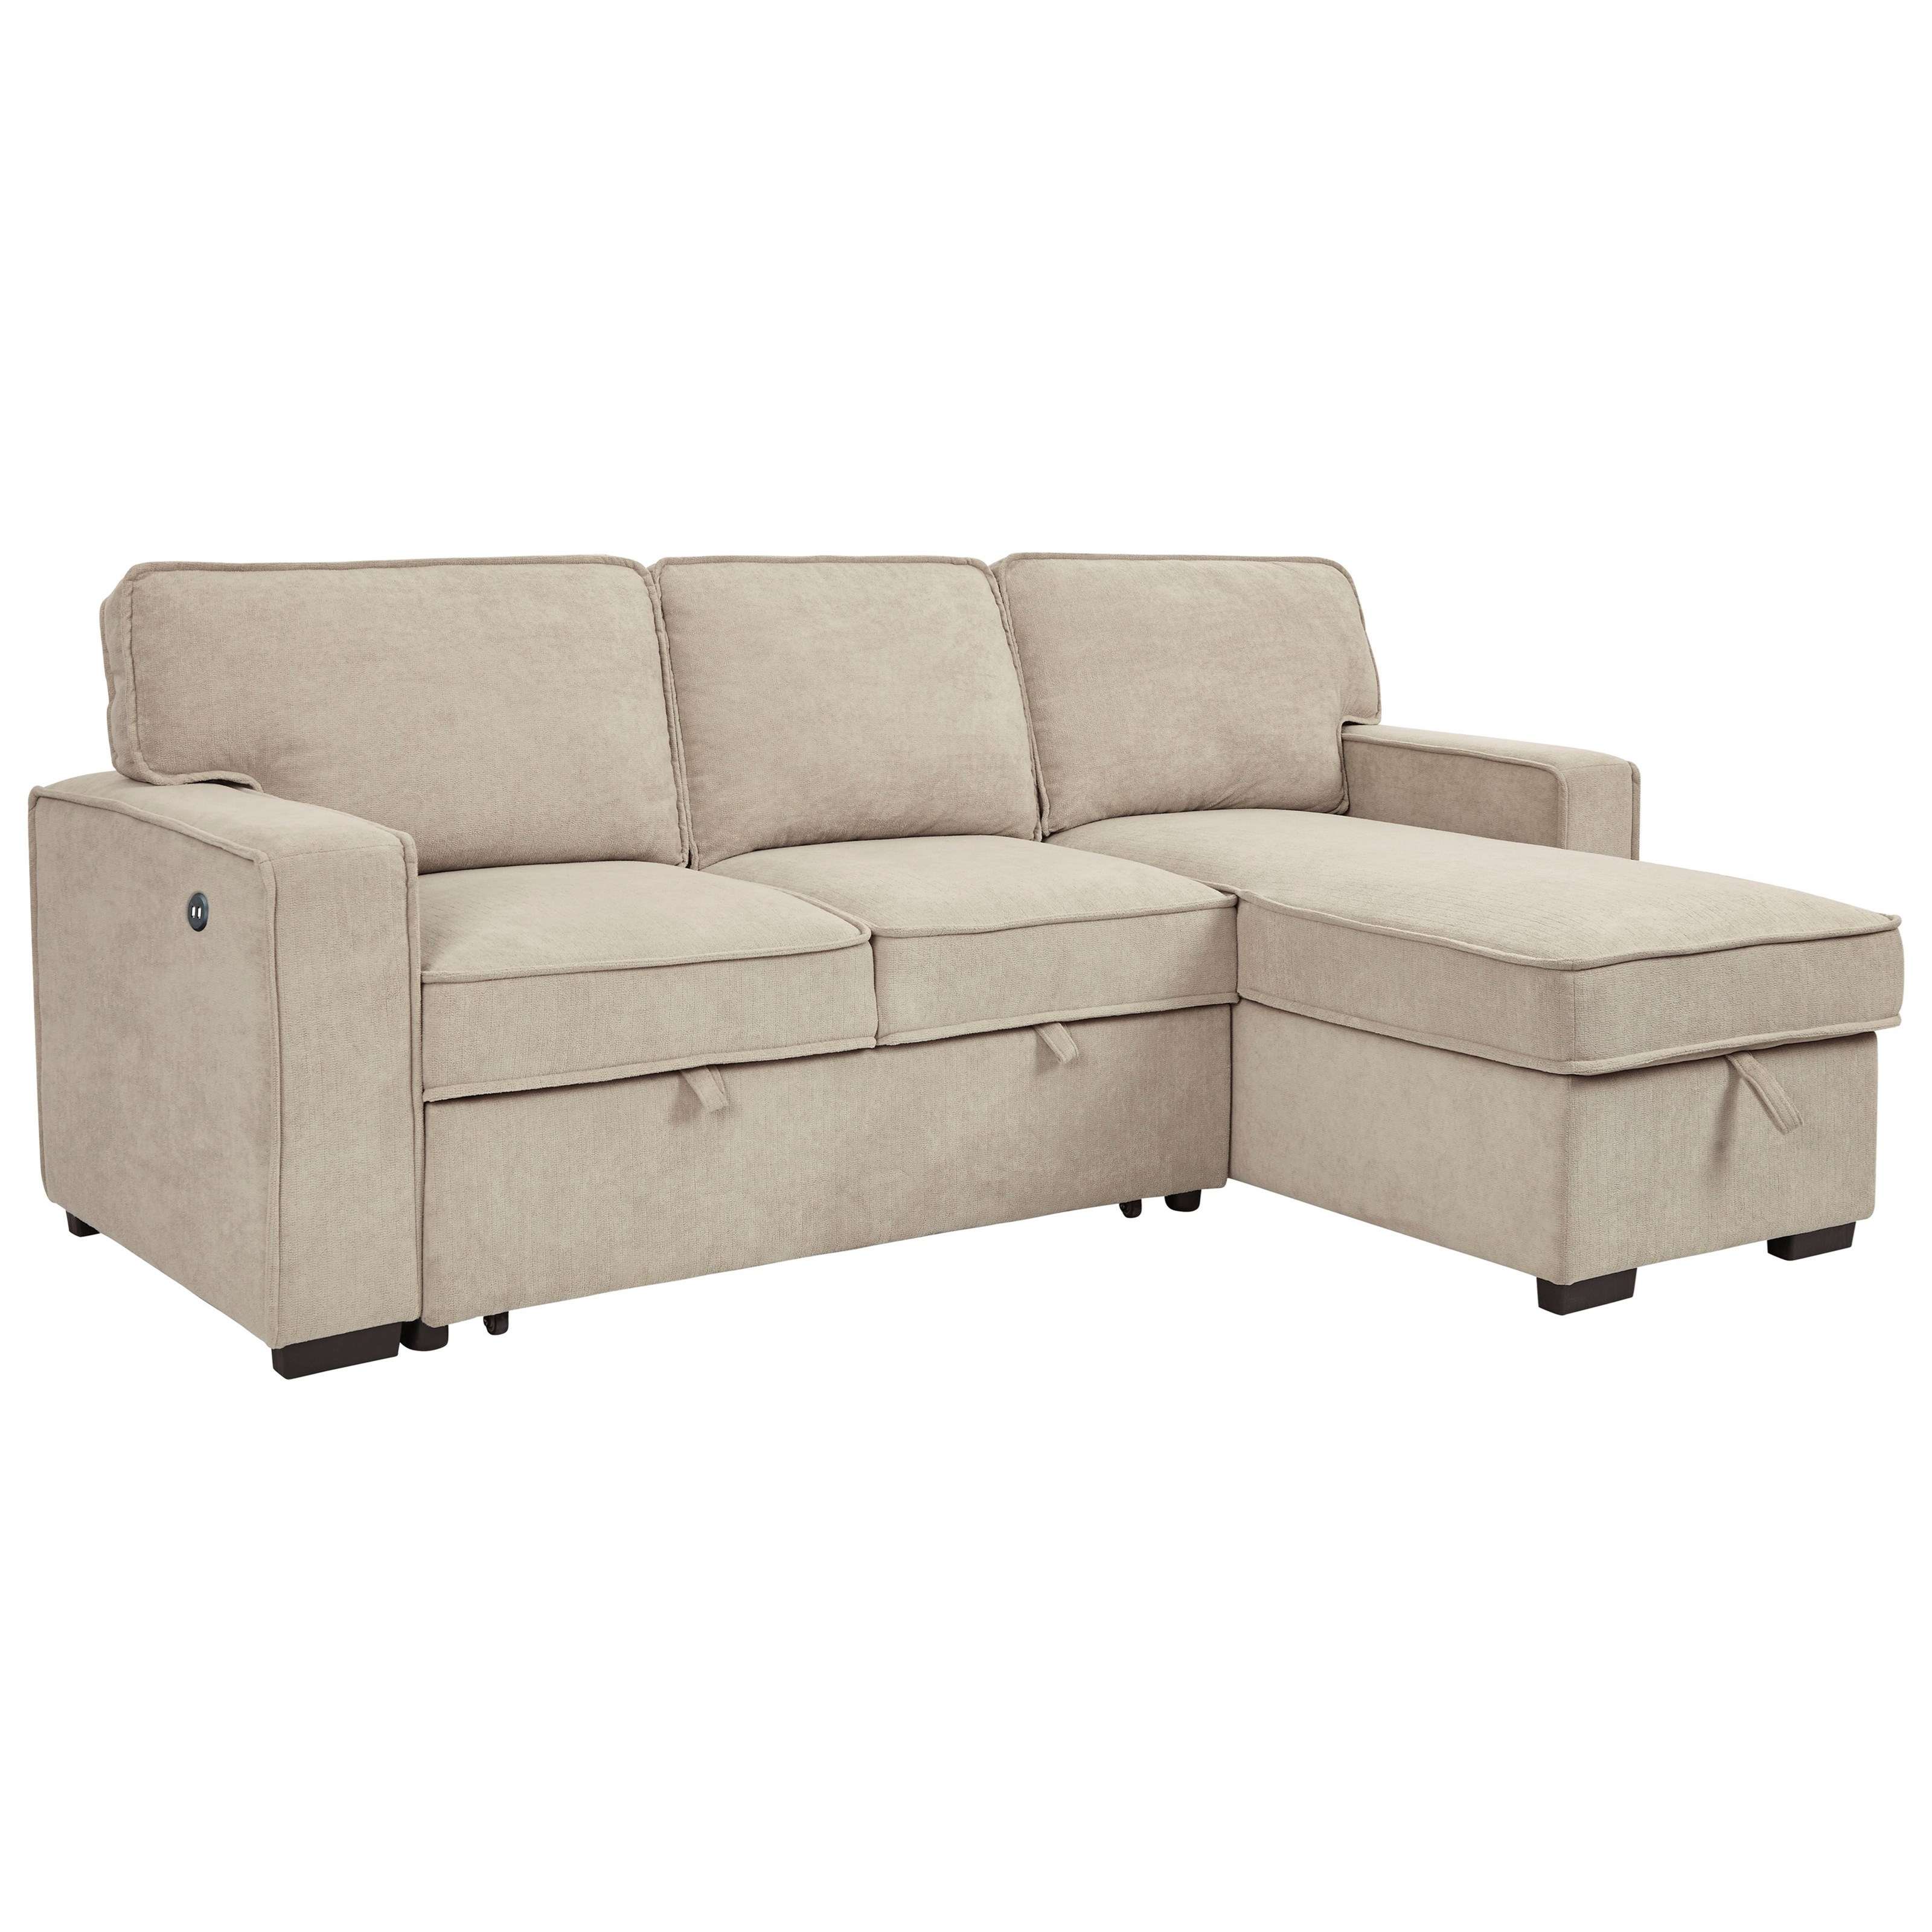 Darton Sofa Chaise with Pop Up Bed & Storage Chaise by Signature at Walker's Furniture